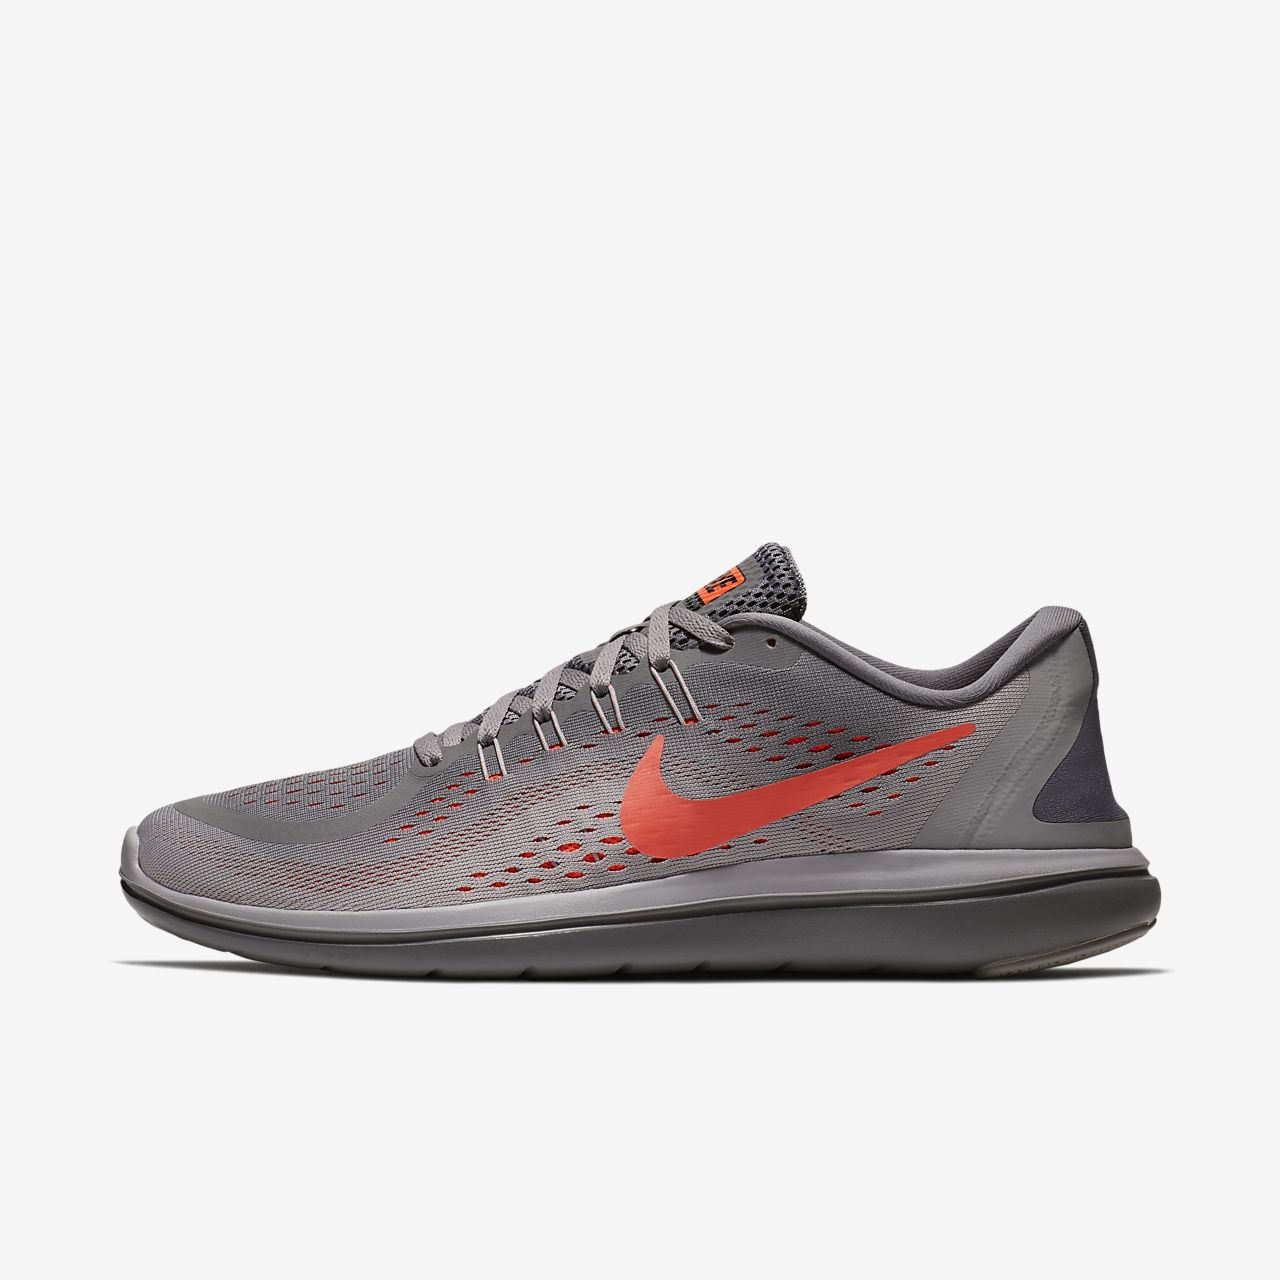 Nike Tennis Men /Black/Dark Grey/Metallic Dark Grey Model:206